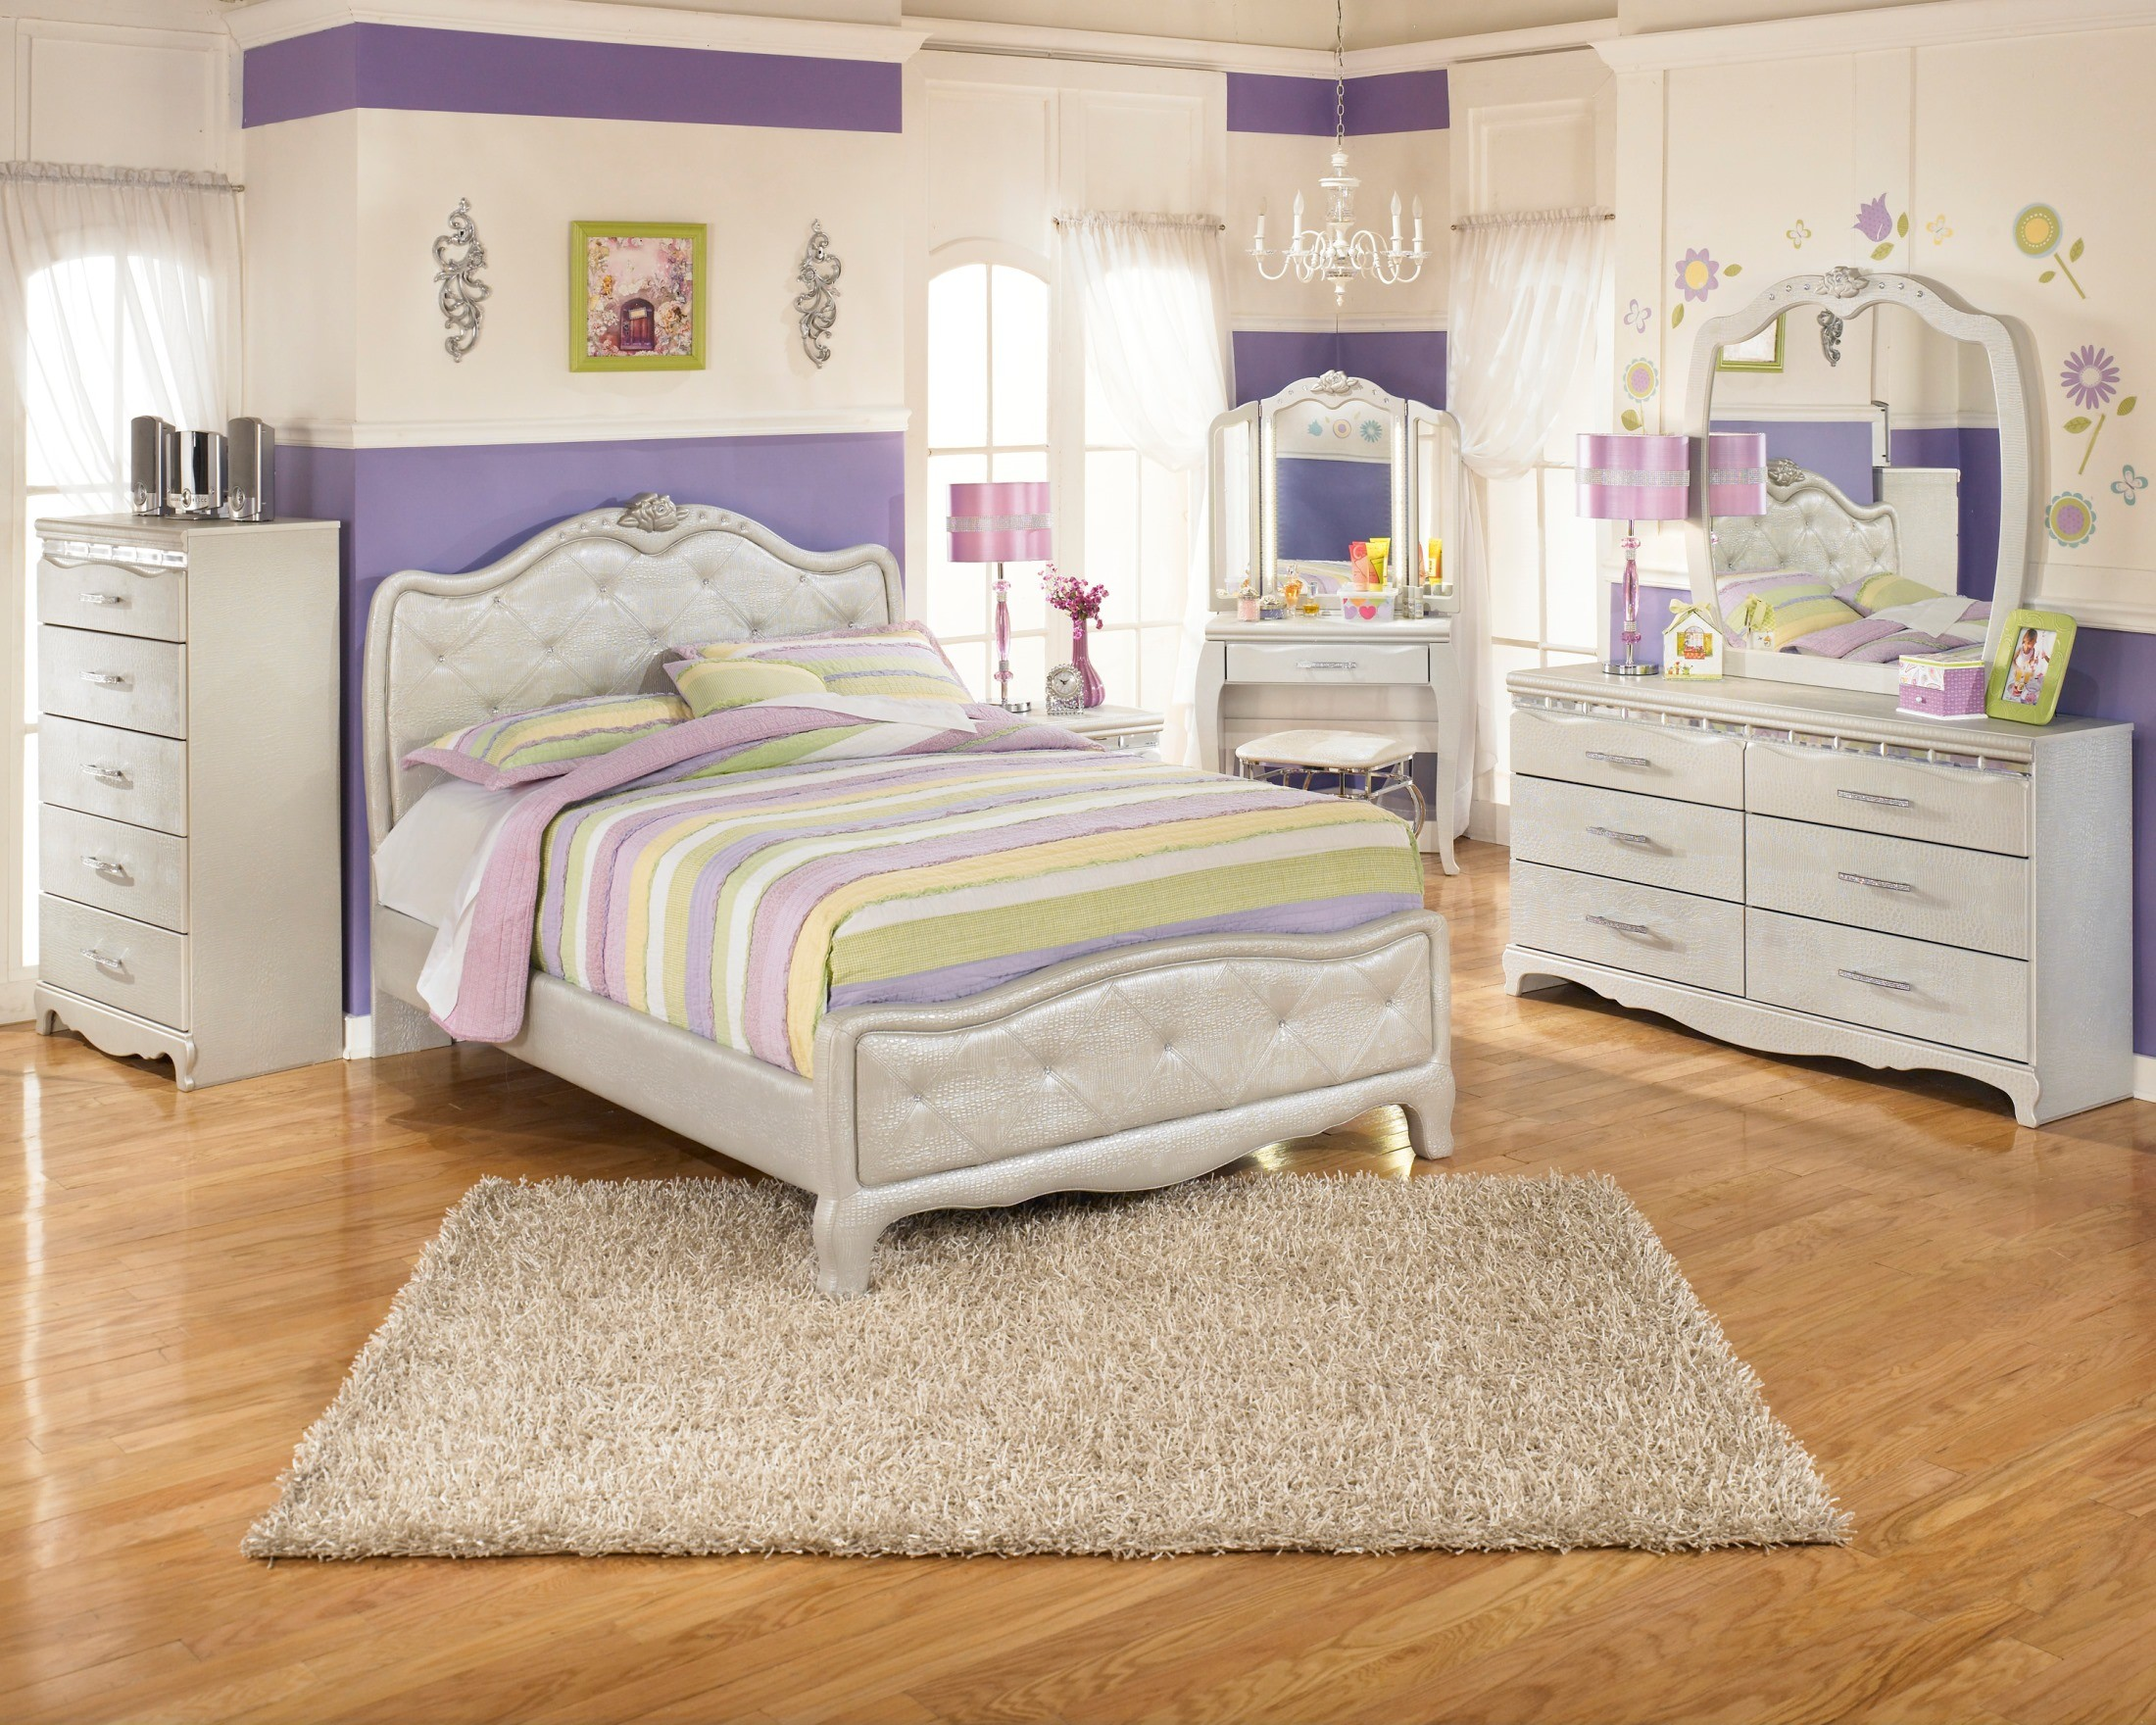 youth bedroom sets zarollina youth upholstered bedroom set from b182 13896